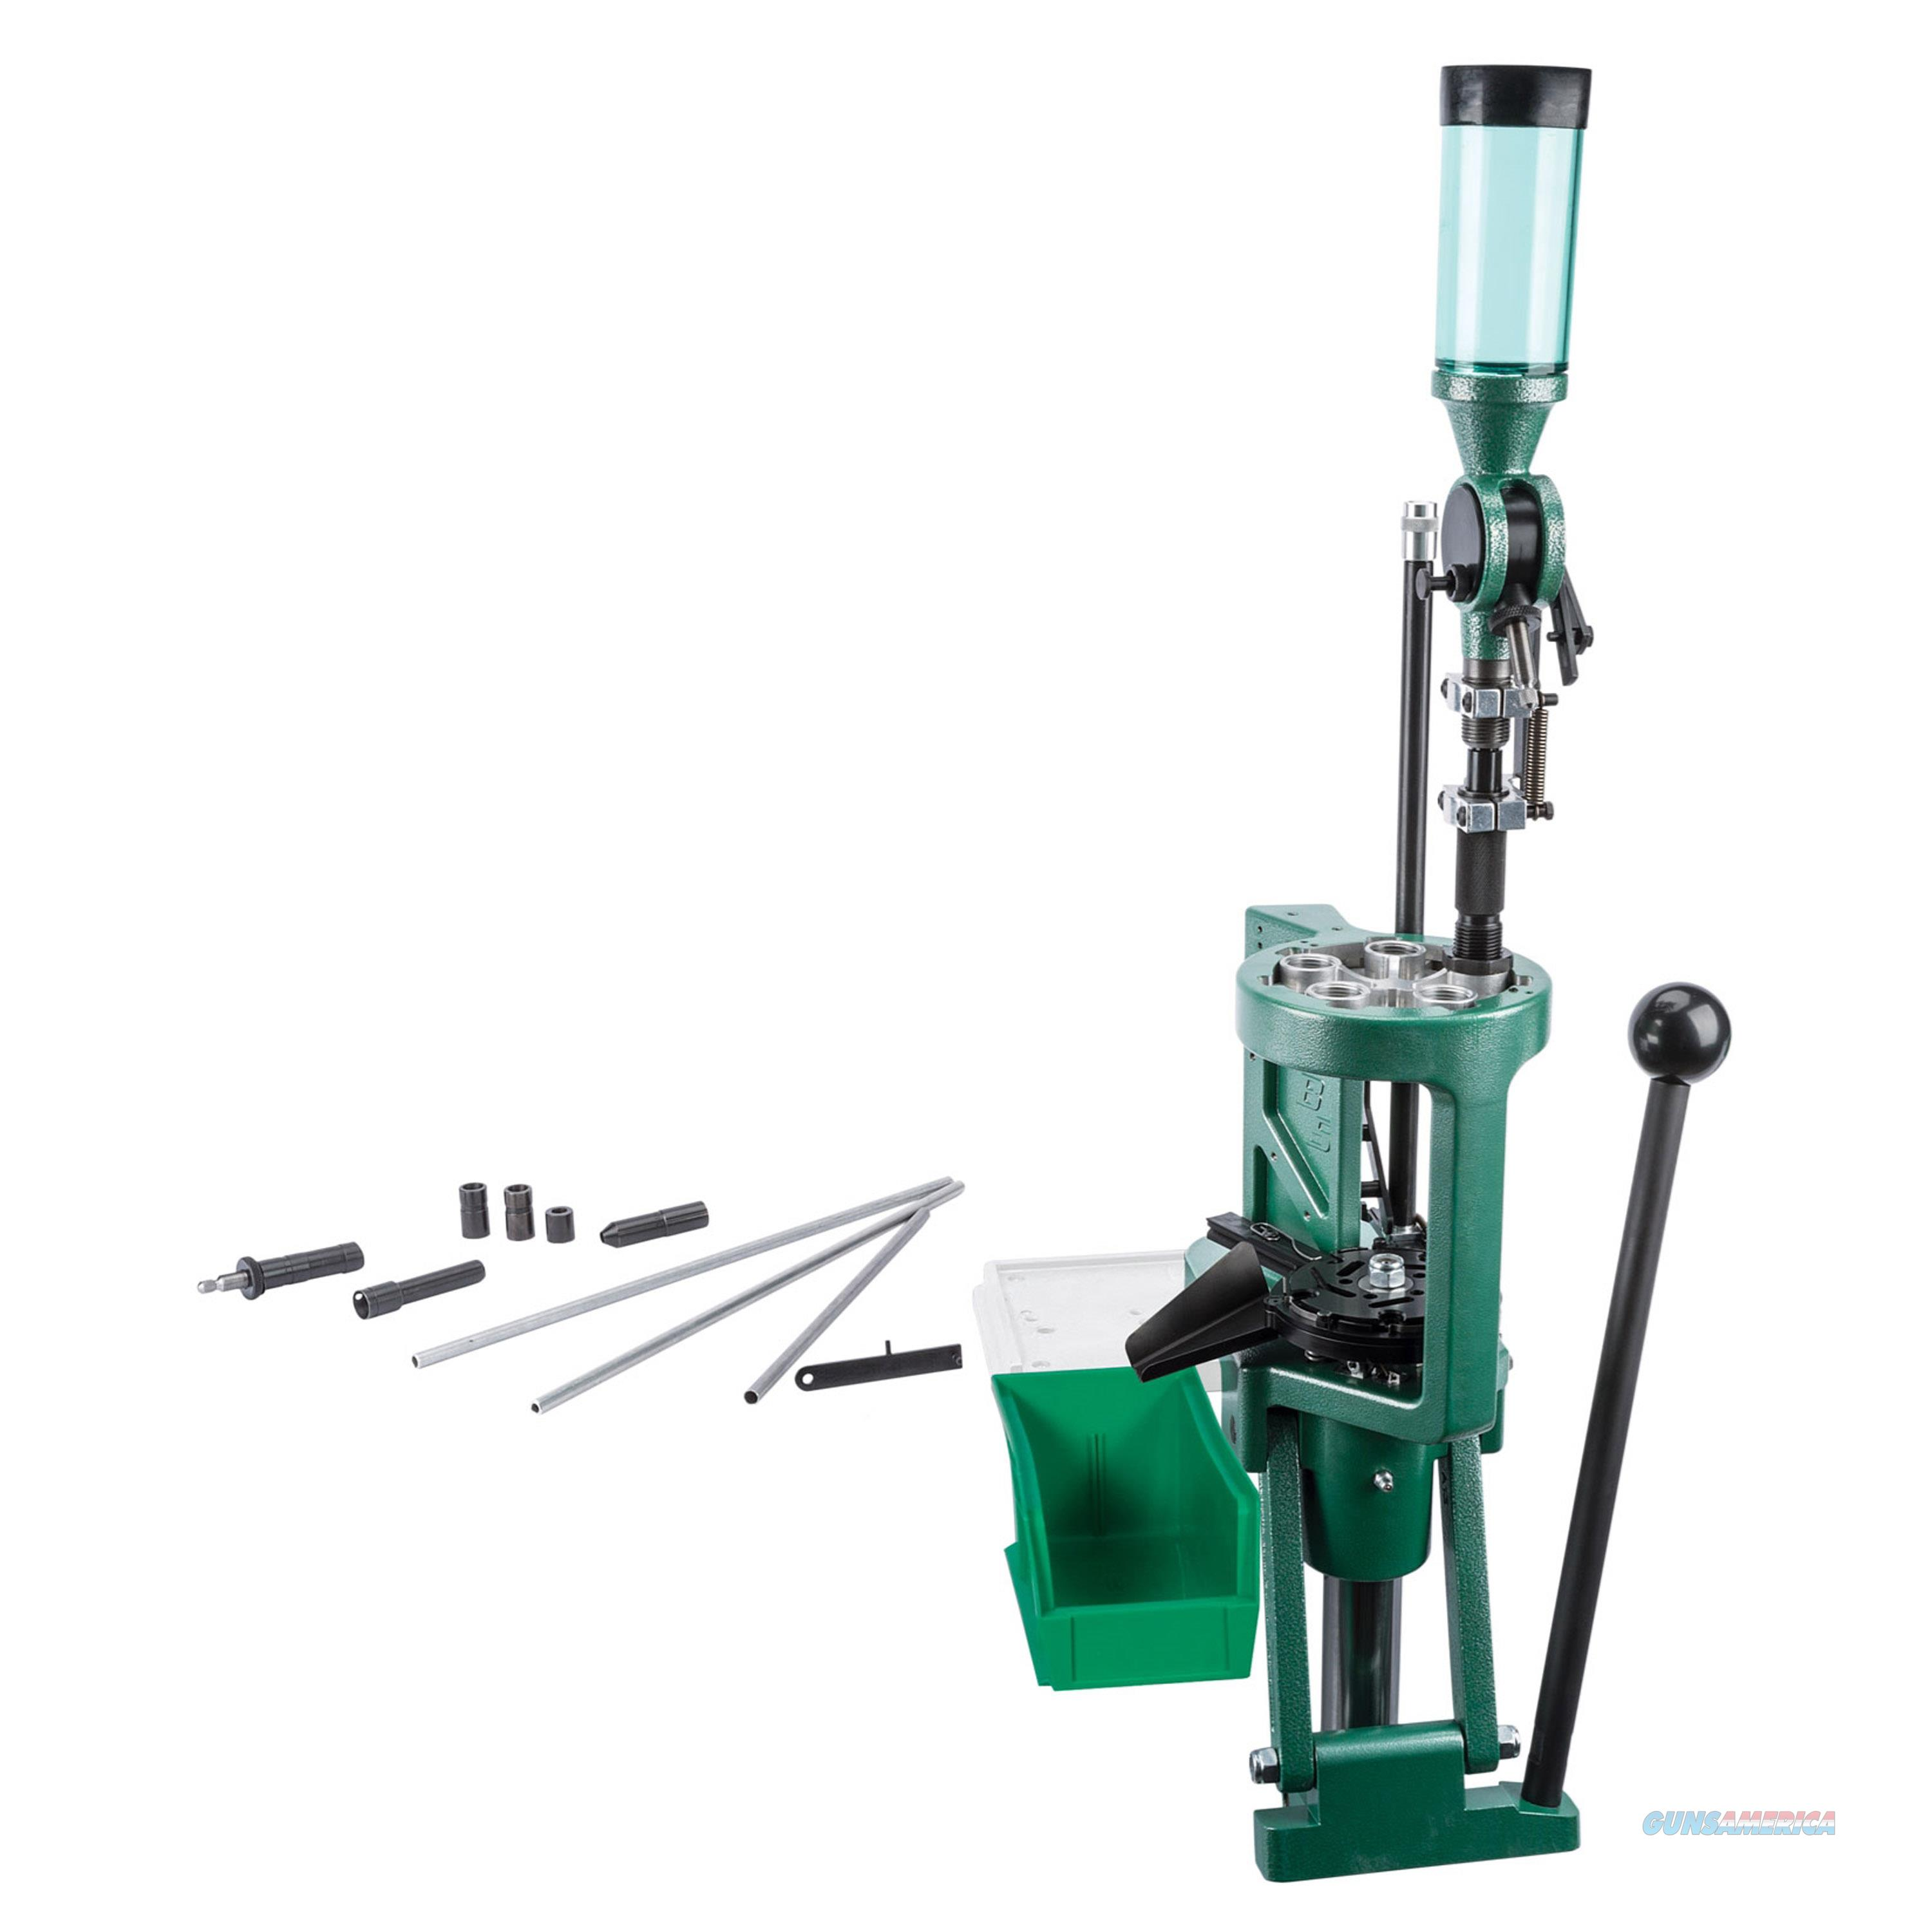 Rcbs Progressive Press 88910  Non-Guns > Reloading > Equipment > Metallic > Misc